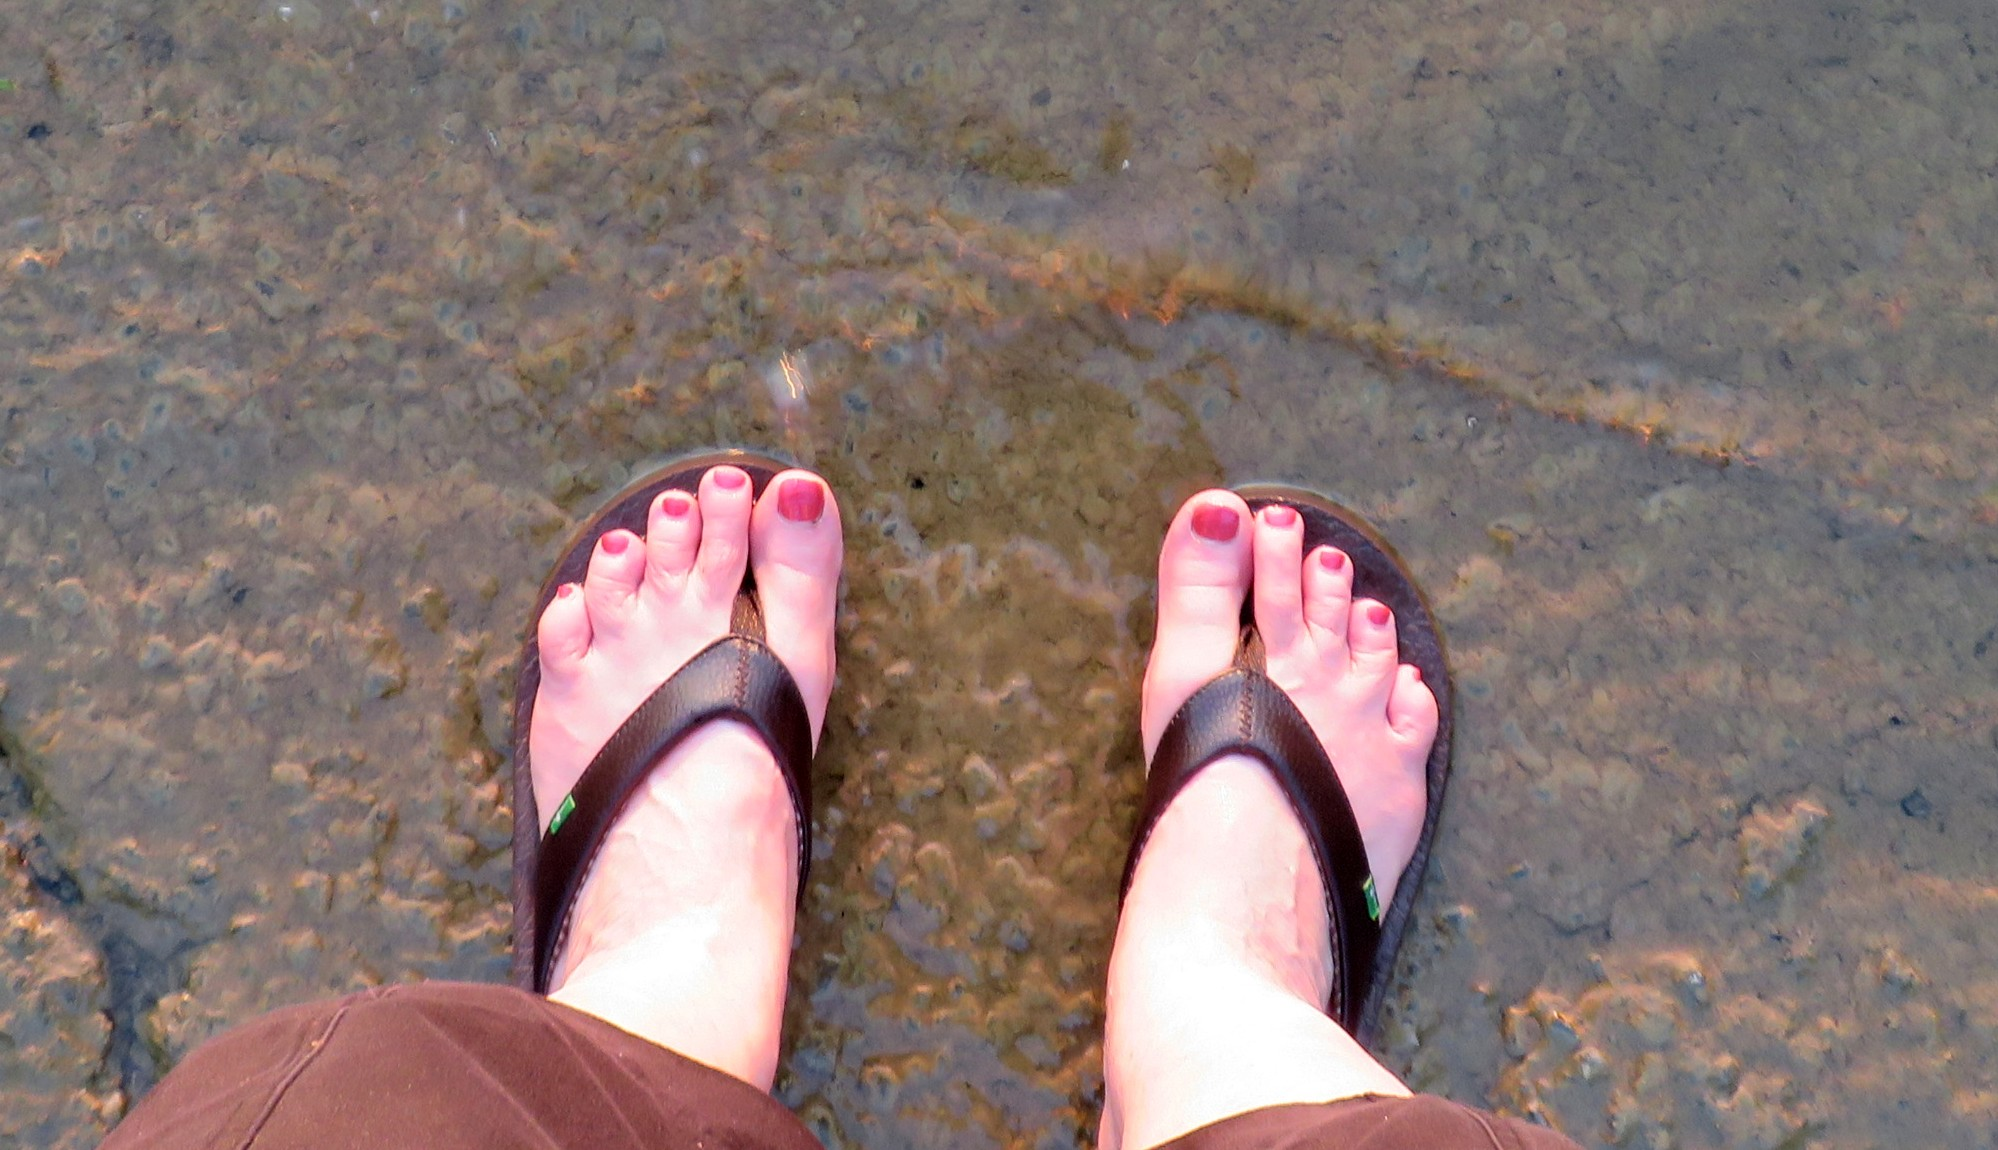 Feet in the water making ripples